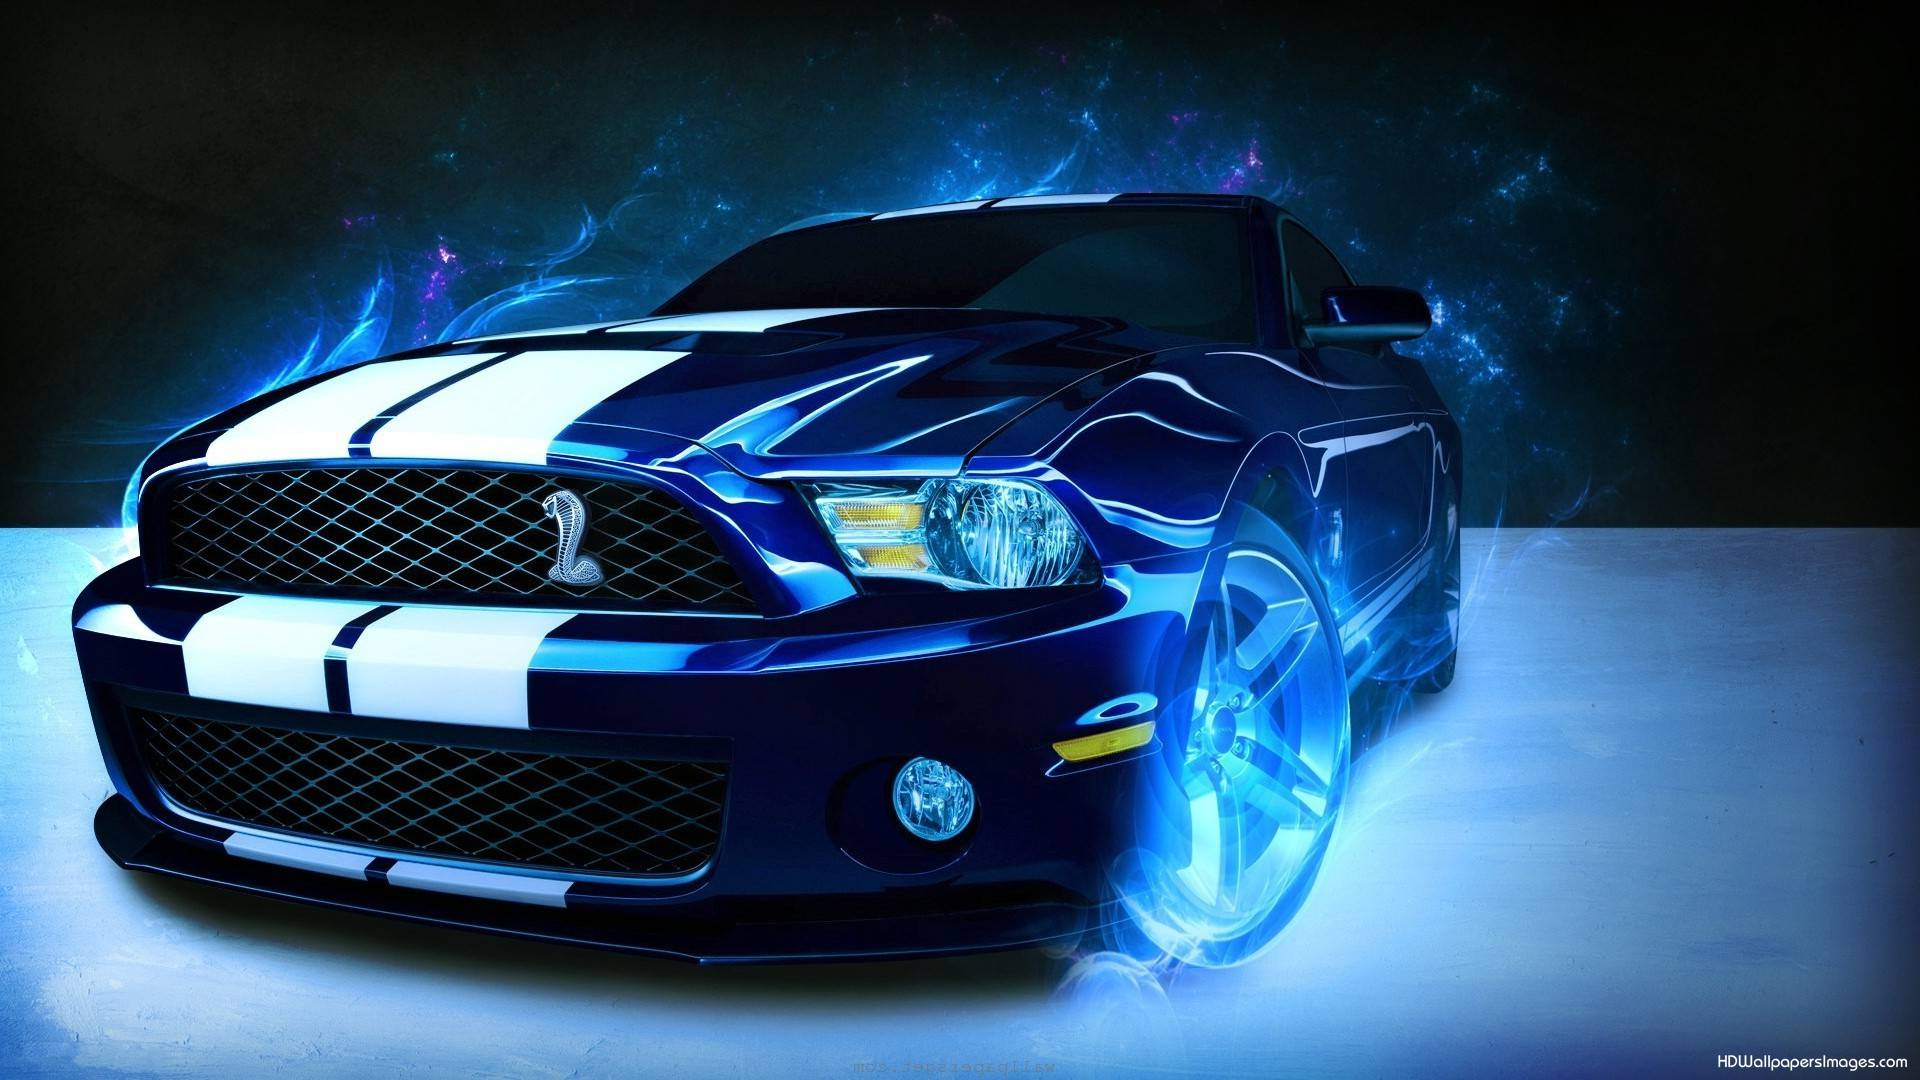 Ford Mustang Gt Wallpaper Ford Mustang Wallpaper Best DesktopBest 1920x1080